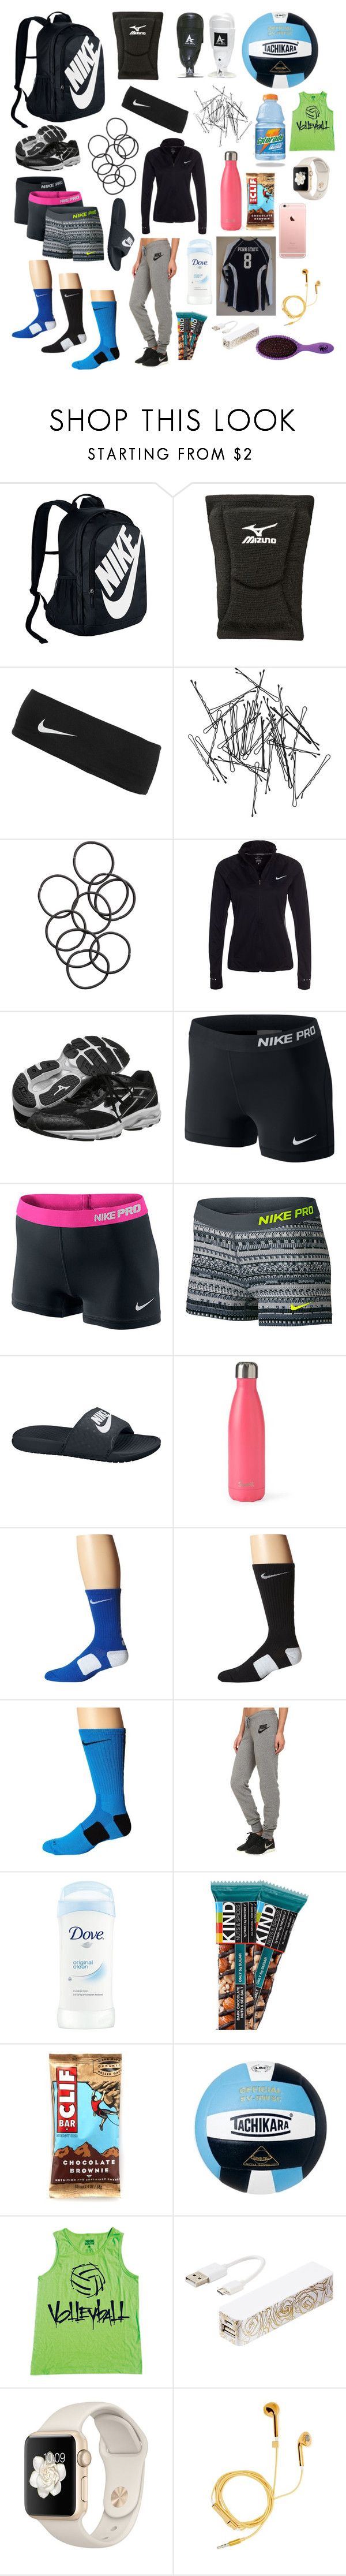 Whats in my volleyball bag by southernannabelle on Polyvore featuring NIKE, Mizuno, Monki, HM, Swell, Triple C Designs, PhunkeeTree and The Wet Brush